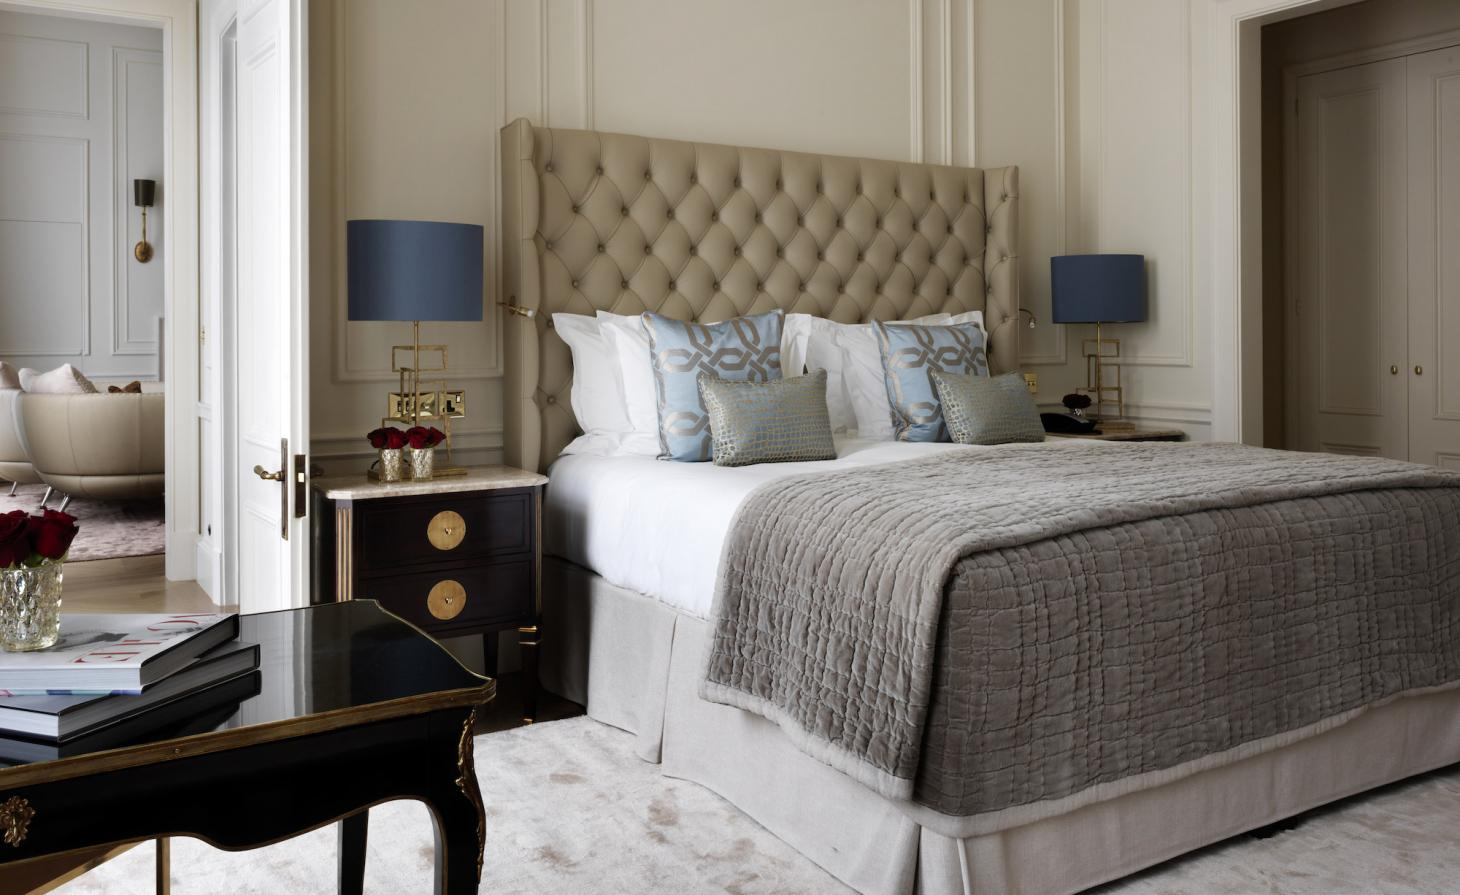 London Uk Hotels With Connecting Rooms